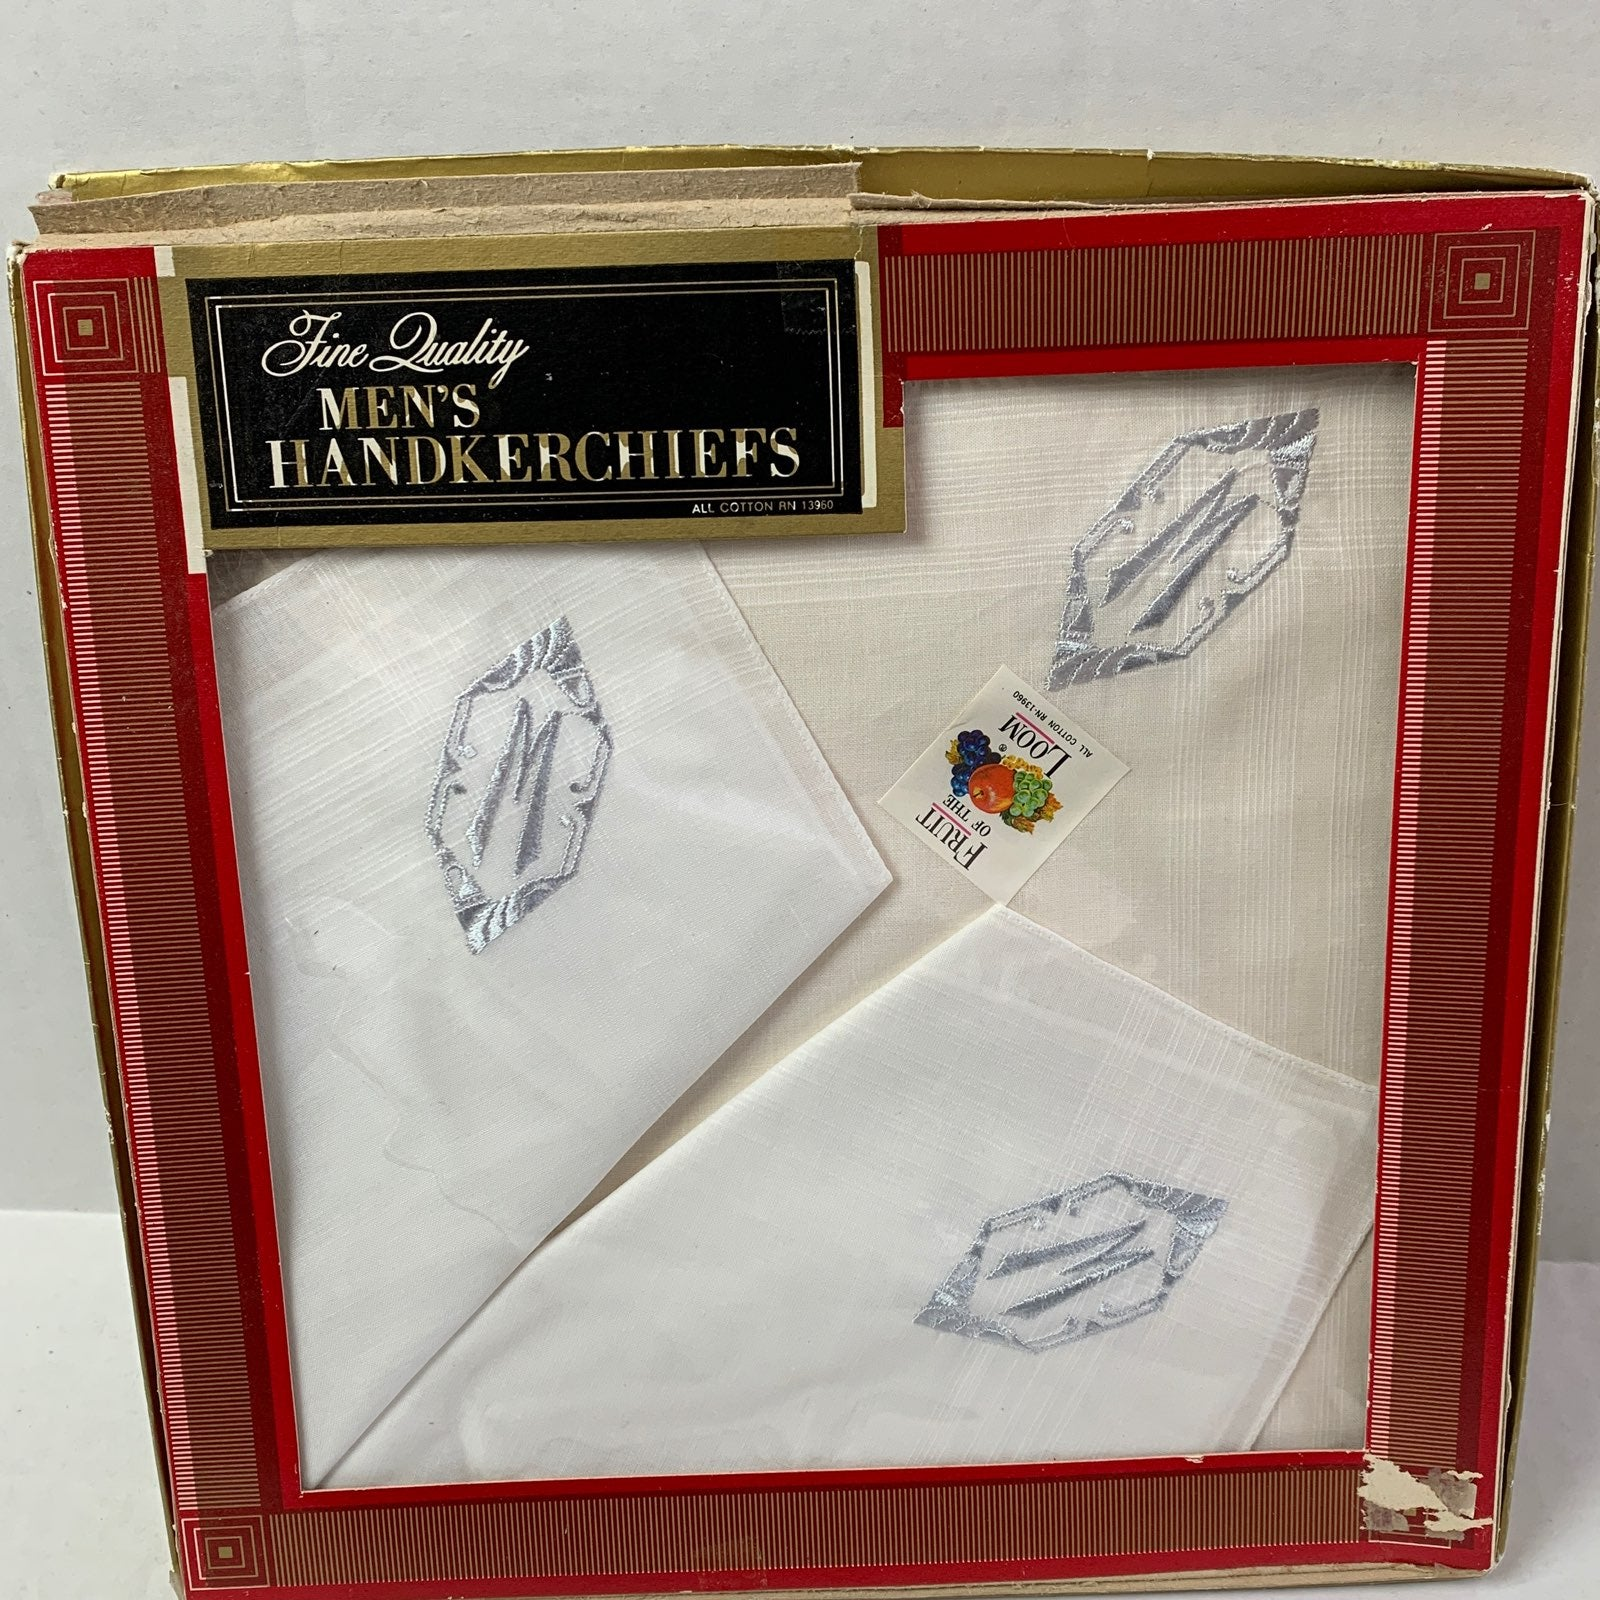 Vintage Fruit Of The Loom Handkerchiefs